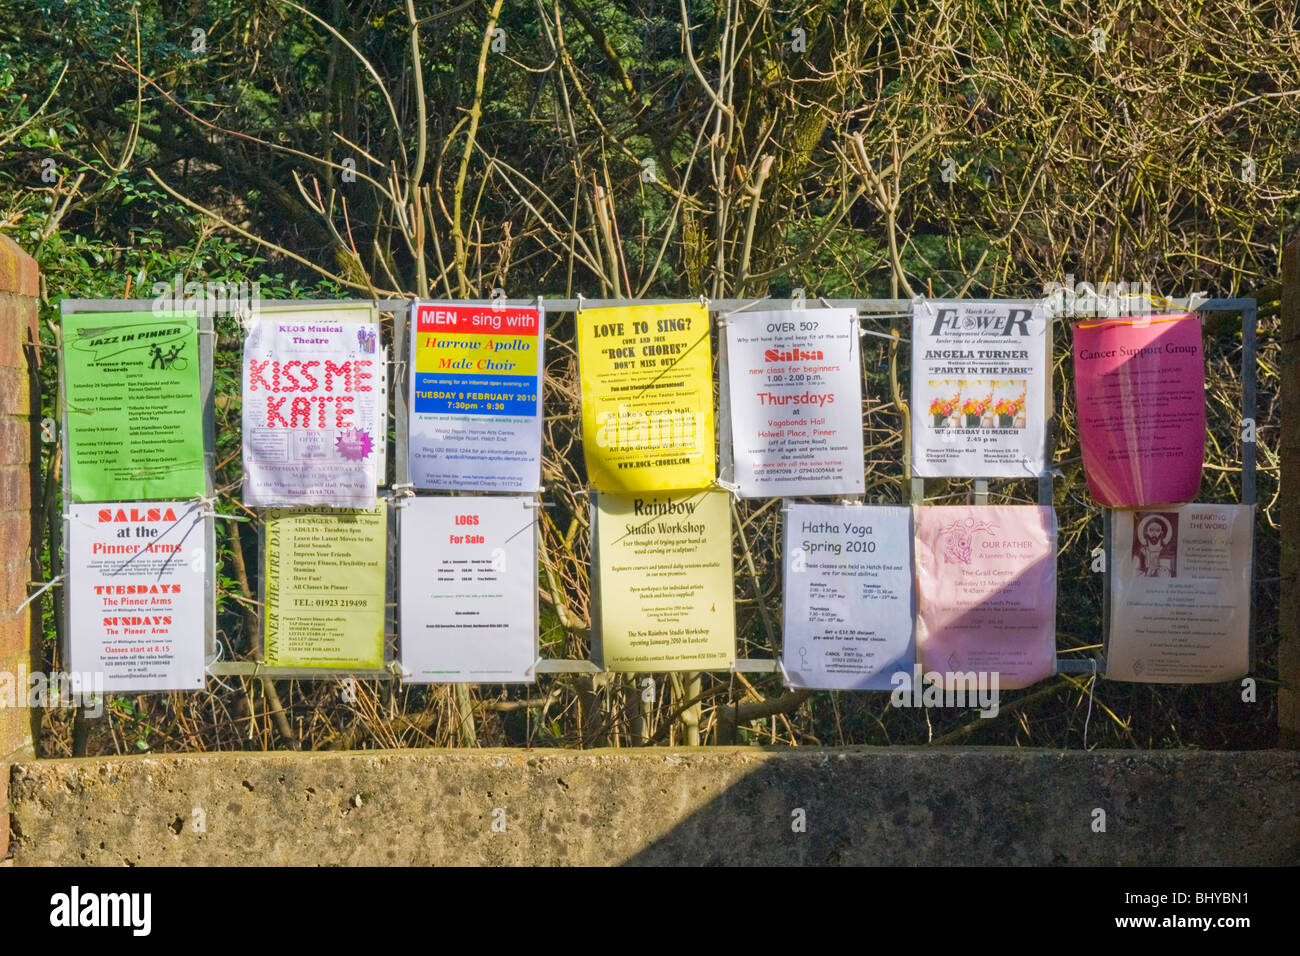 Pinner Middlesex , local outside noticeboard of events & amenities pinned on railings ie Jazz  , Kiss me Kate - Stock Image